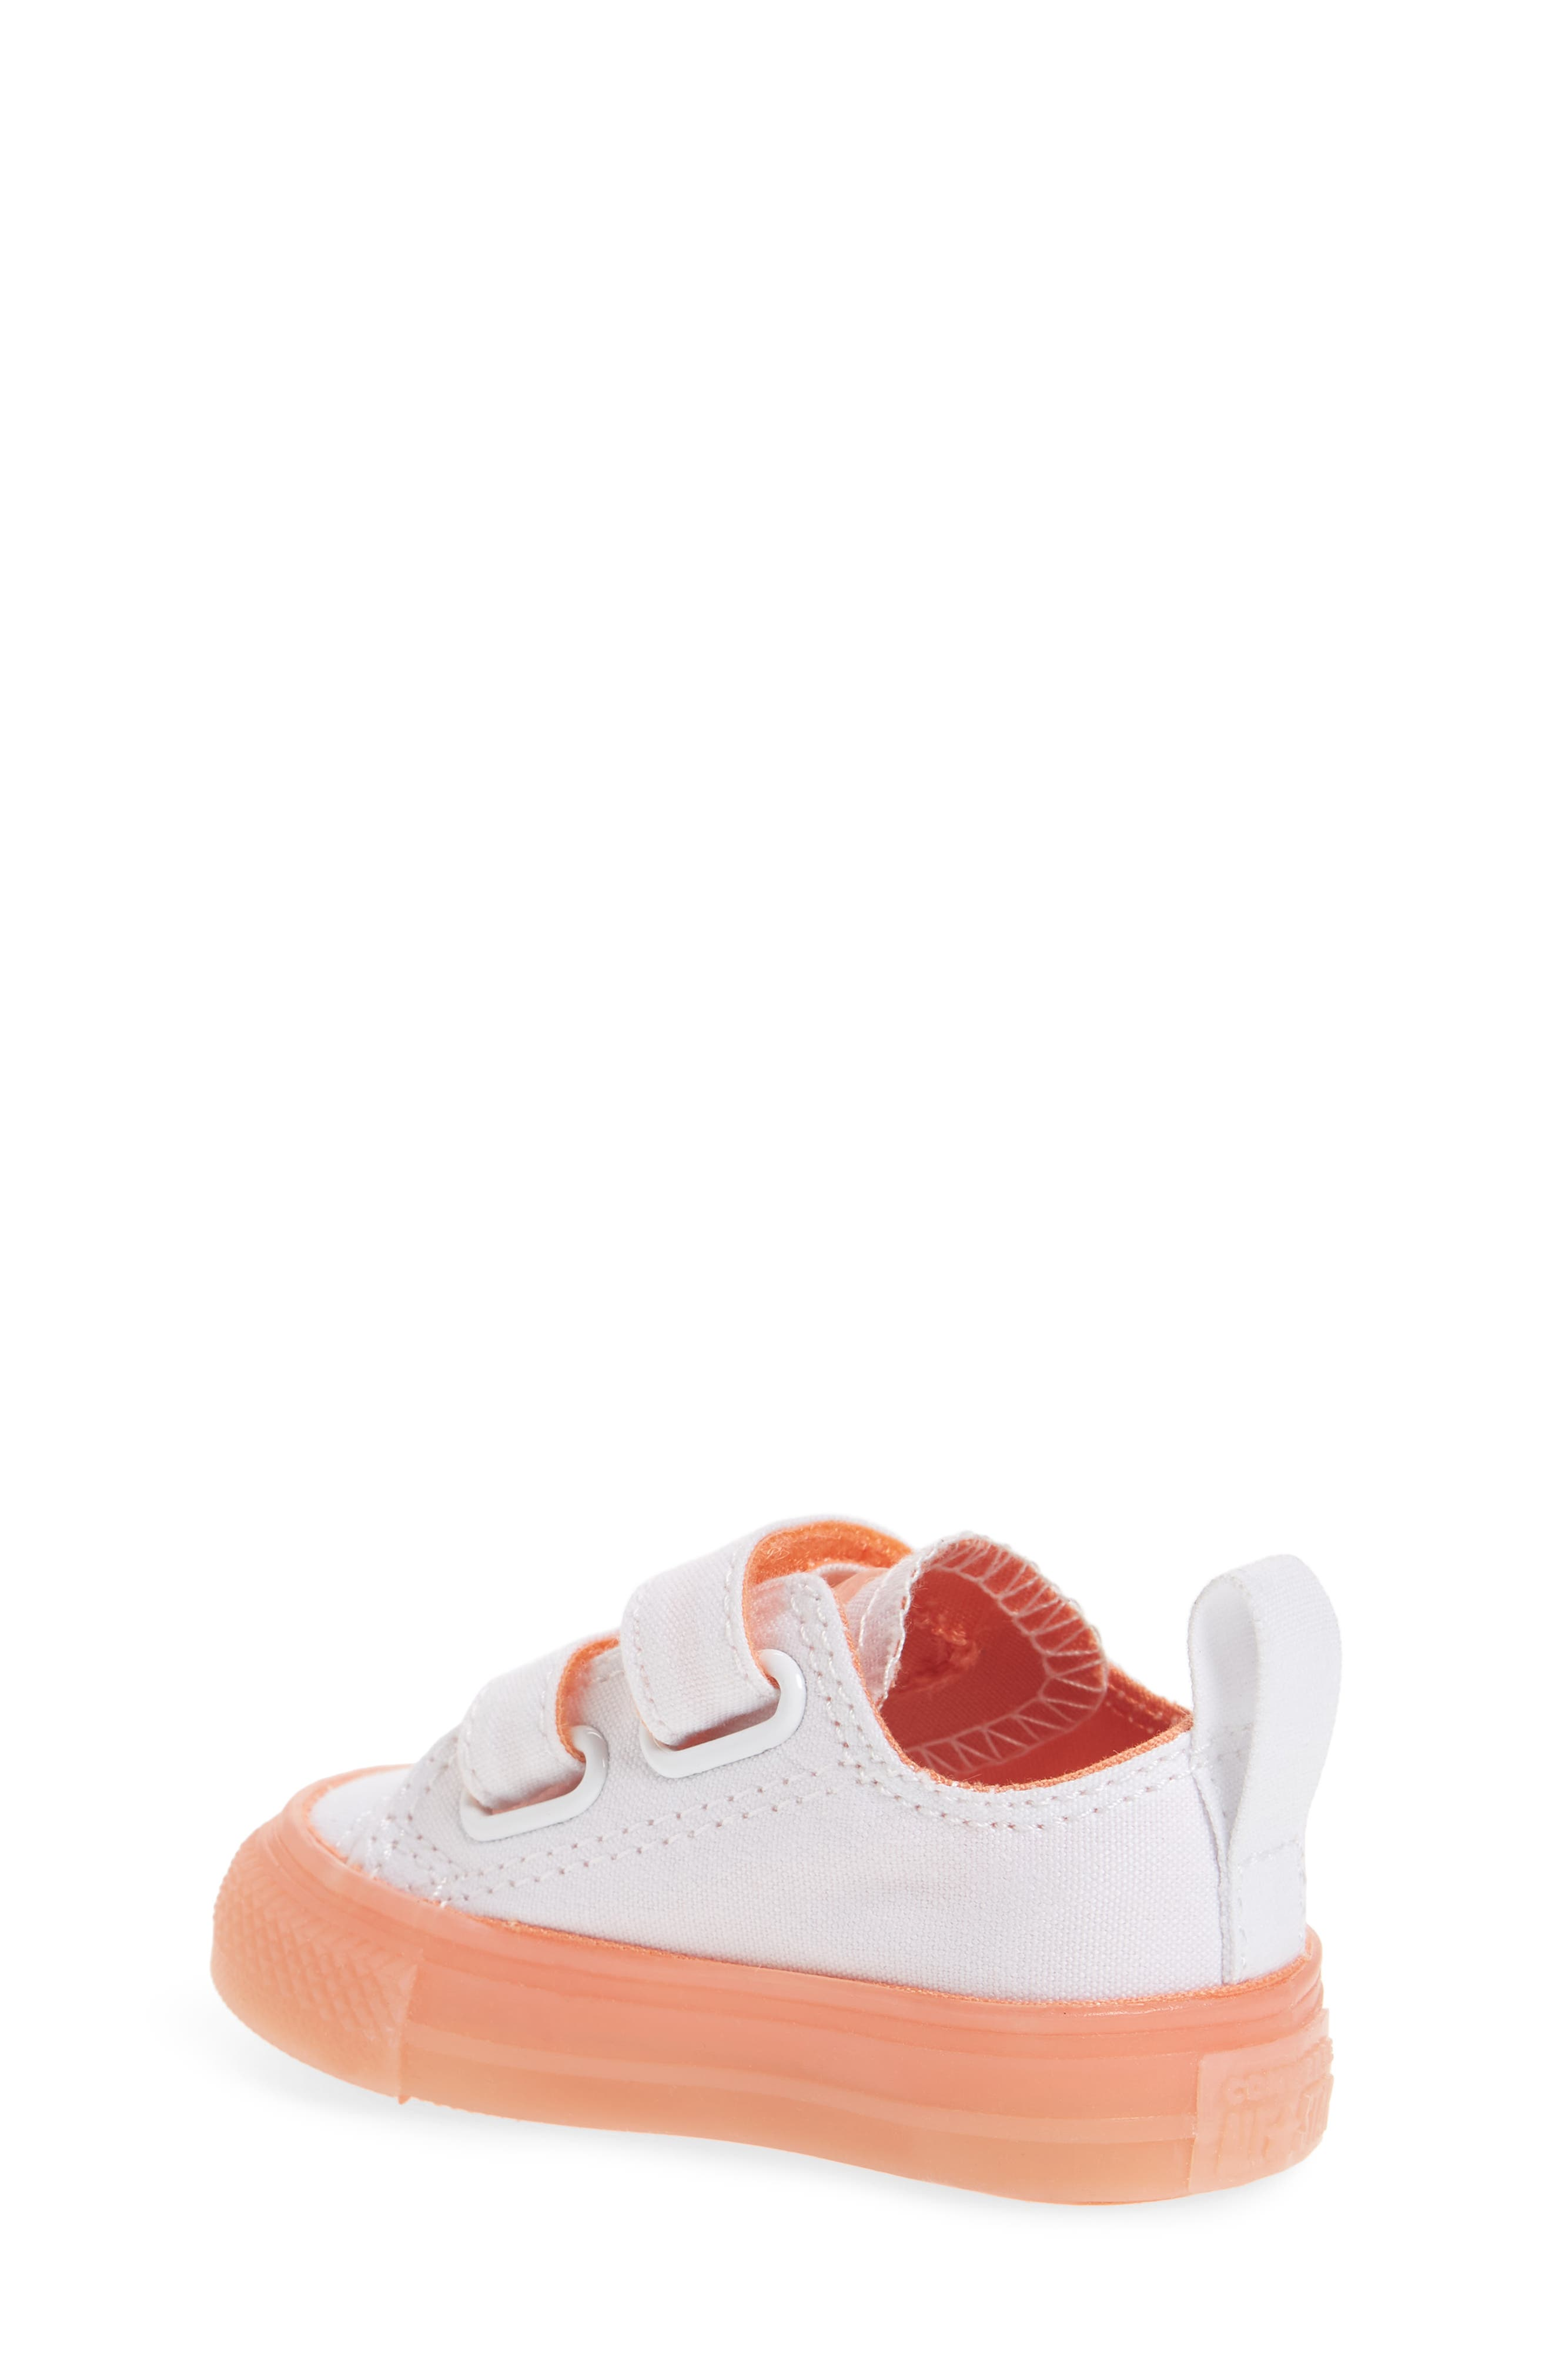 Chuck Taylor<sup>®</sup> All Star<sup>®</sup> Jelly Sneaker,                             Alternate thumbnail 2, color,                             Orange